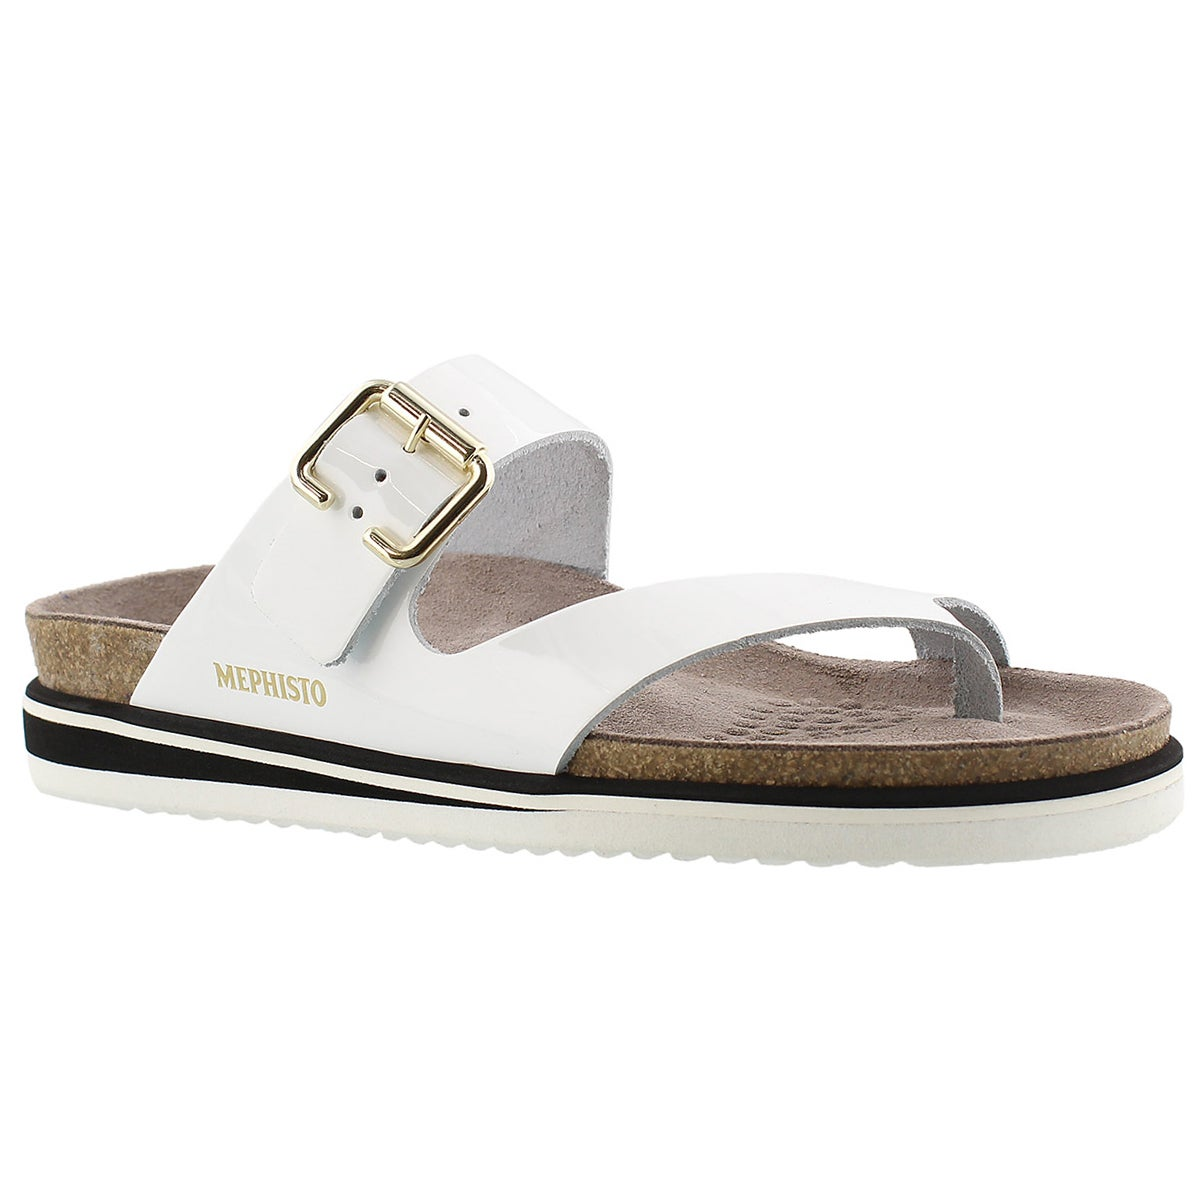 Lds Safo wht pat cork footbed thong